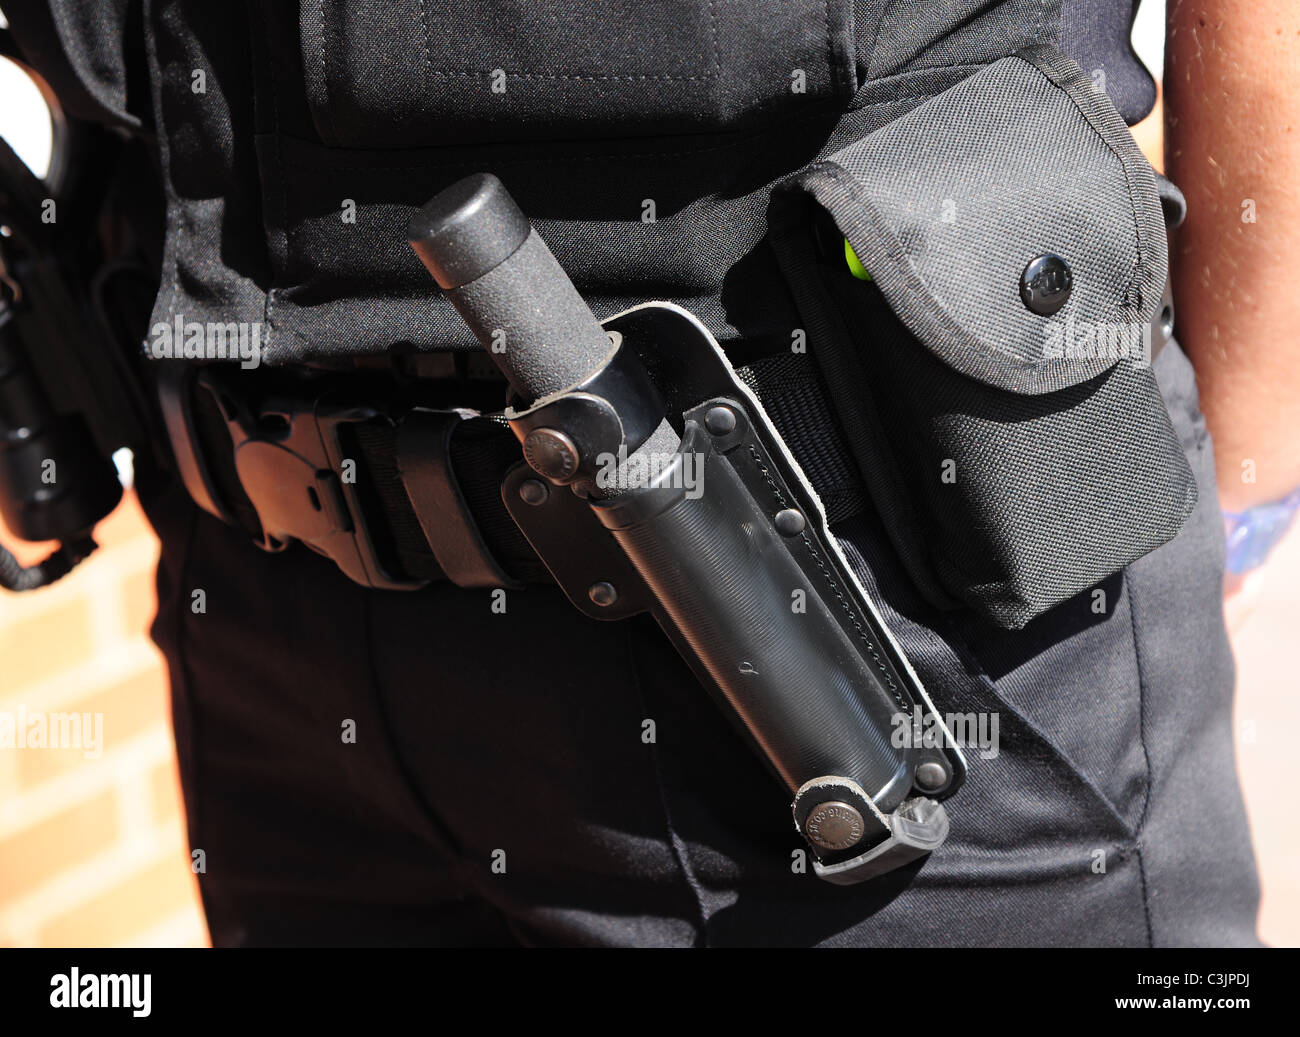 Police utility belt showing carriage of the issue police baton, called an ASP. - Stock Image